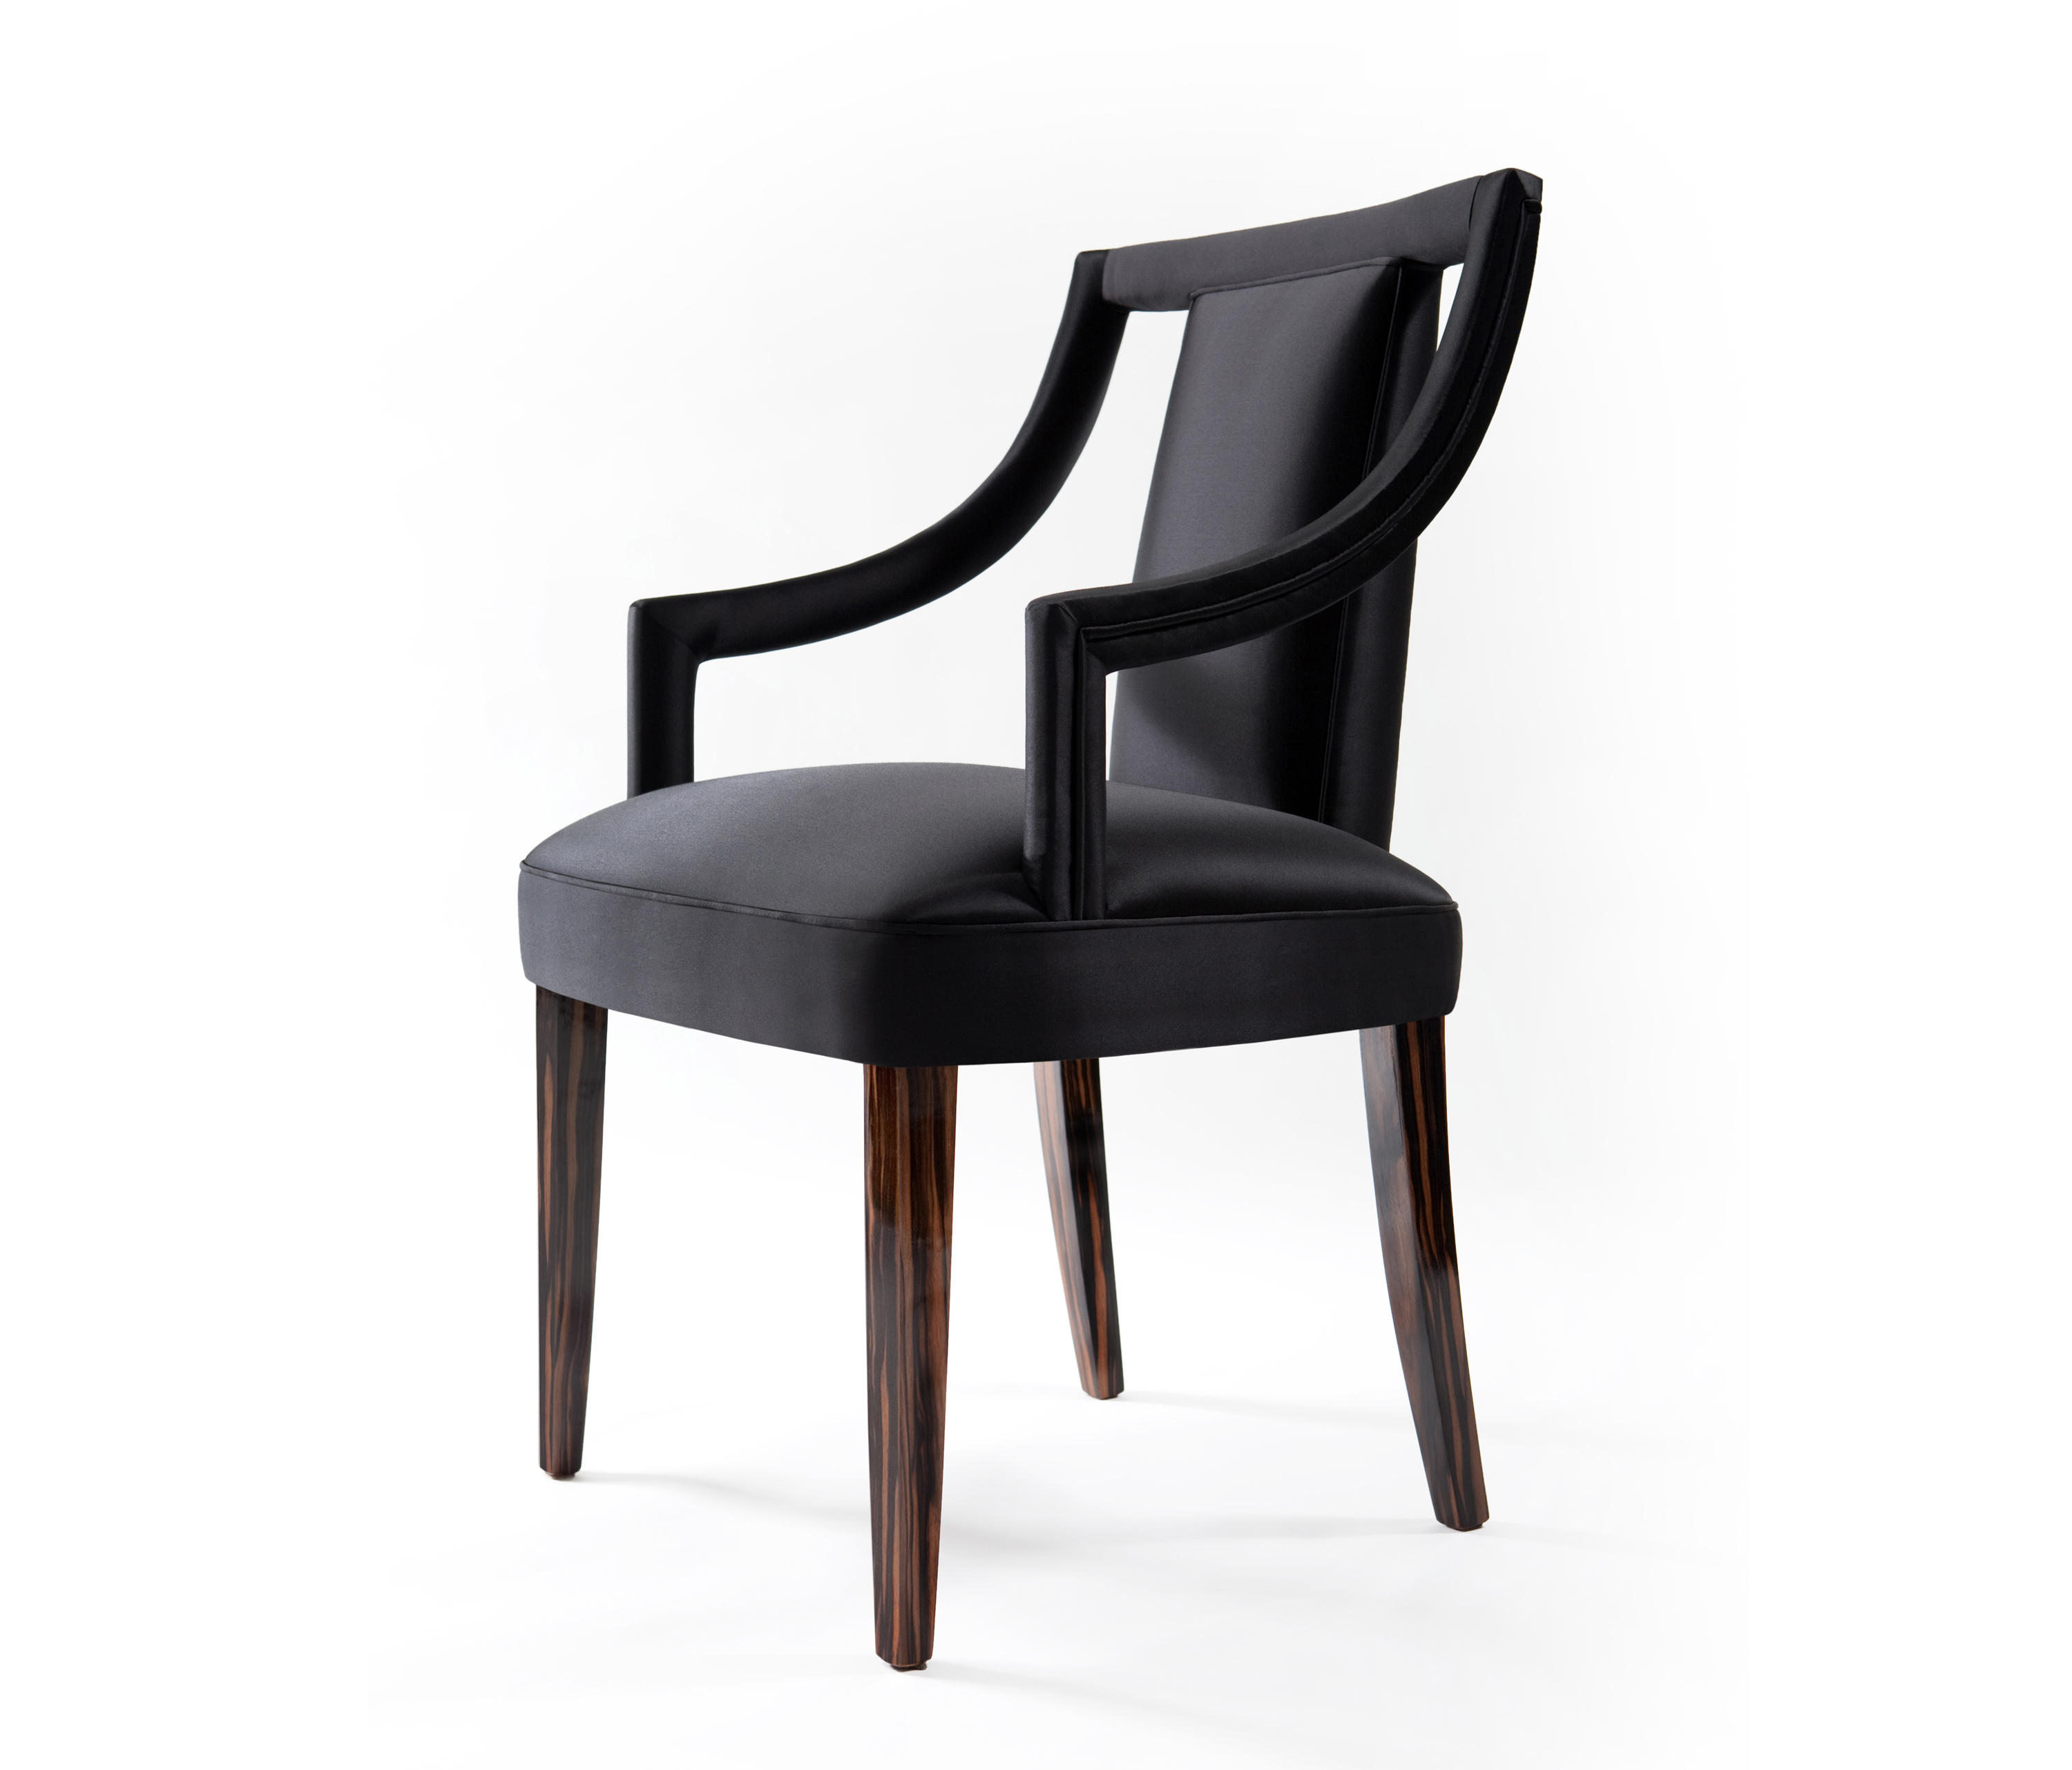 Corset chair restaurant chairs from munna architonic